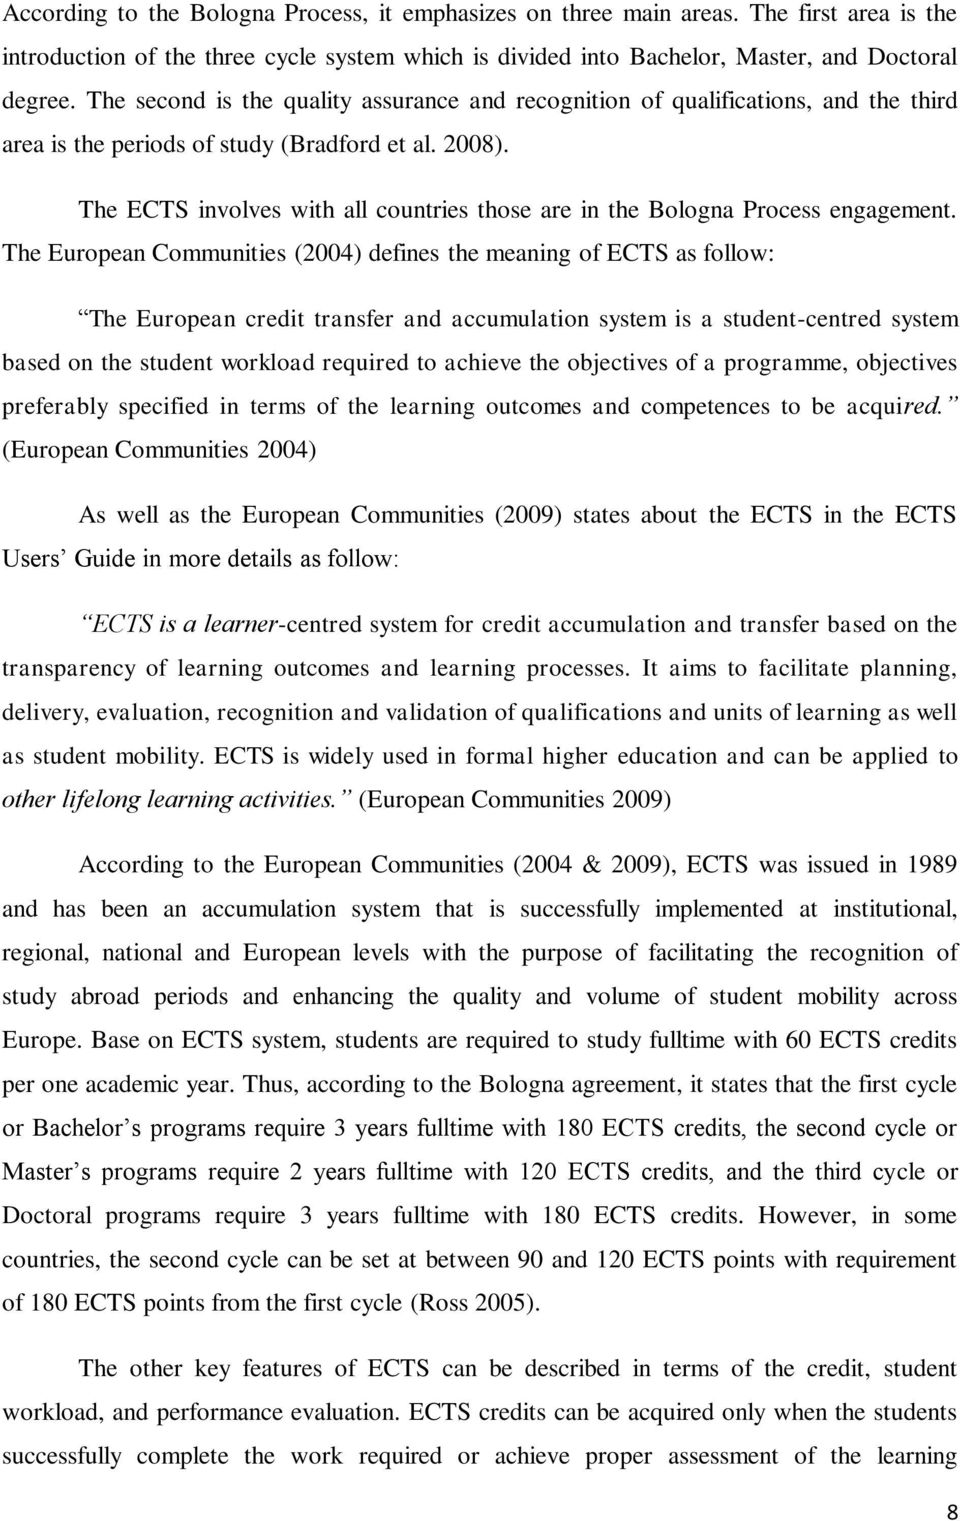 The ECTS involves with all countries those are in the Bologna Process engagement.